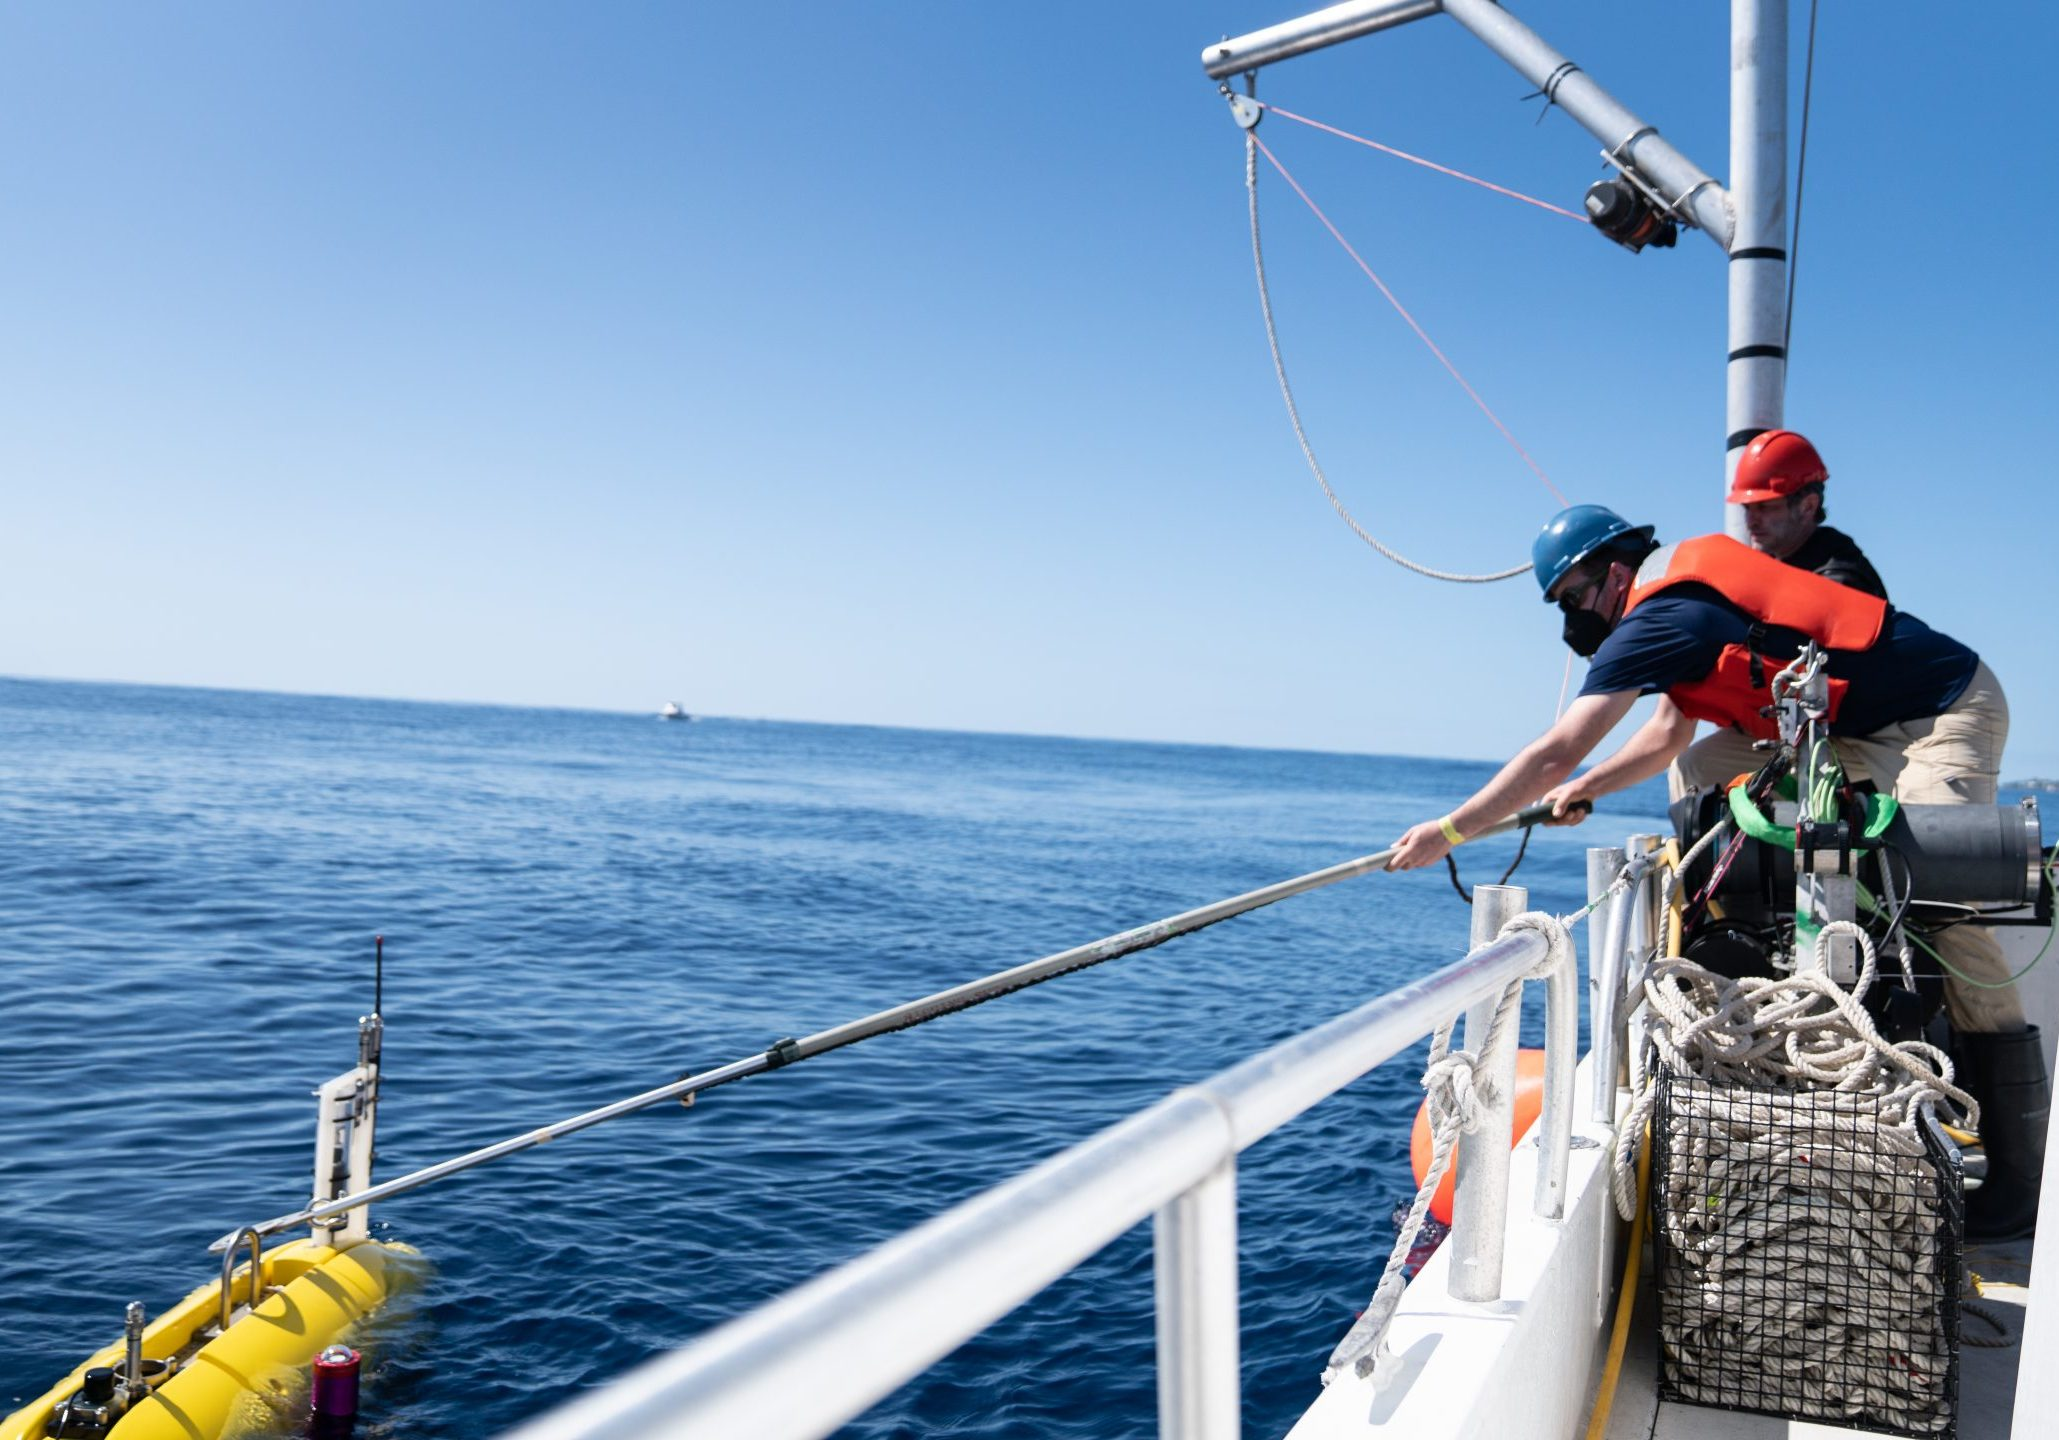 Research Technician Fredrick Marin uses a pole to hook <em>Mesobot</em> to <em>Catapult</em>'s winch, which will lift it onto the deck. Credit: Jennifer Berglund